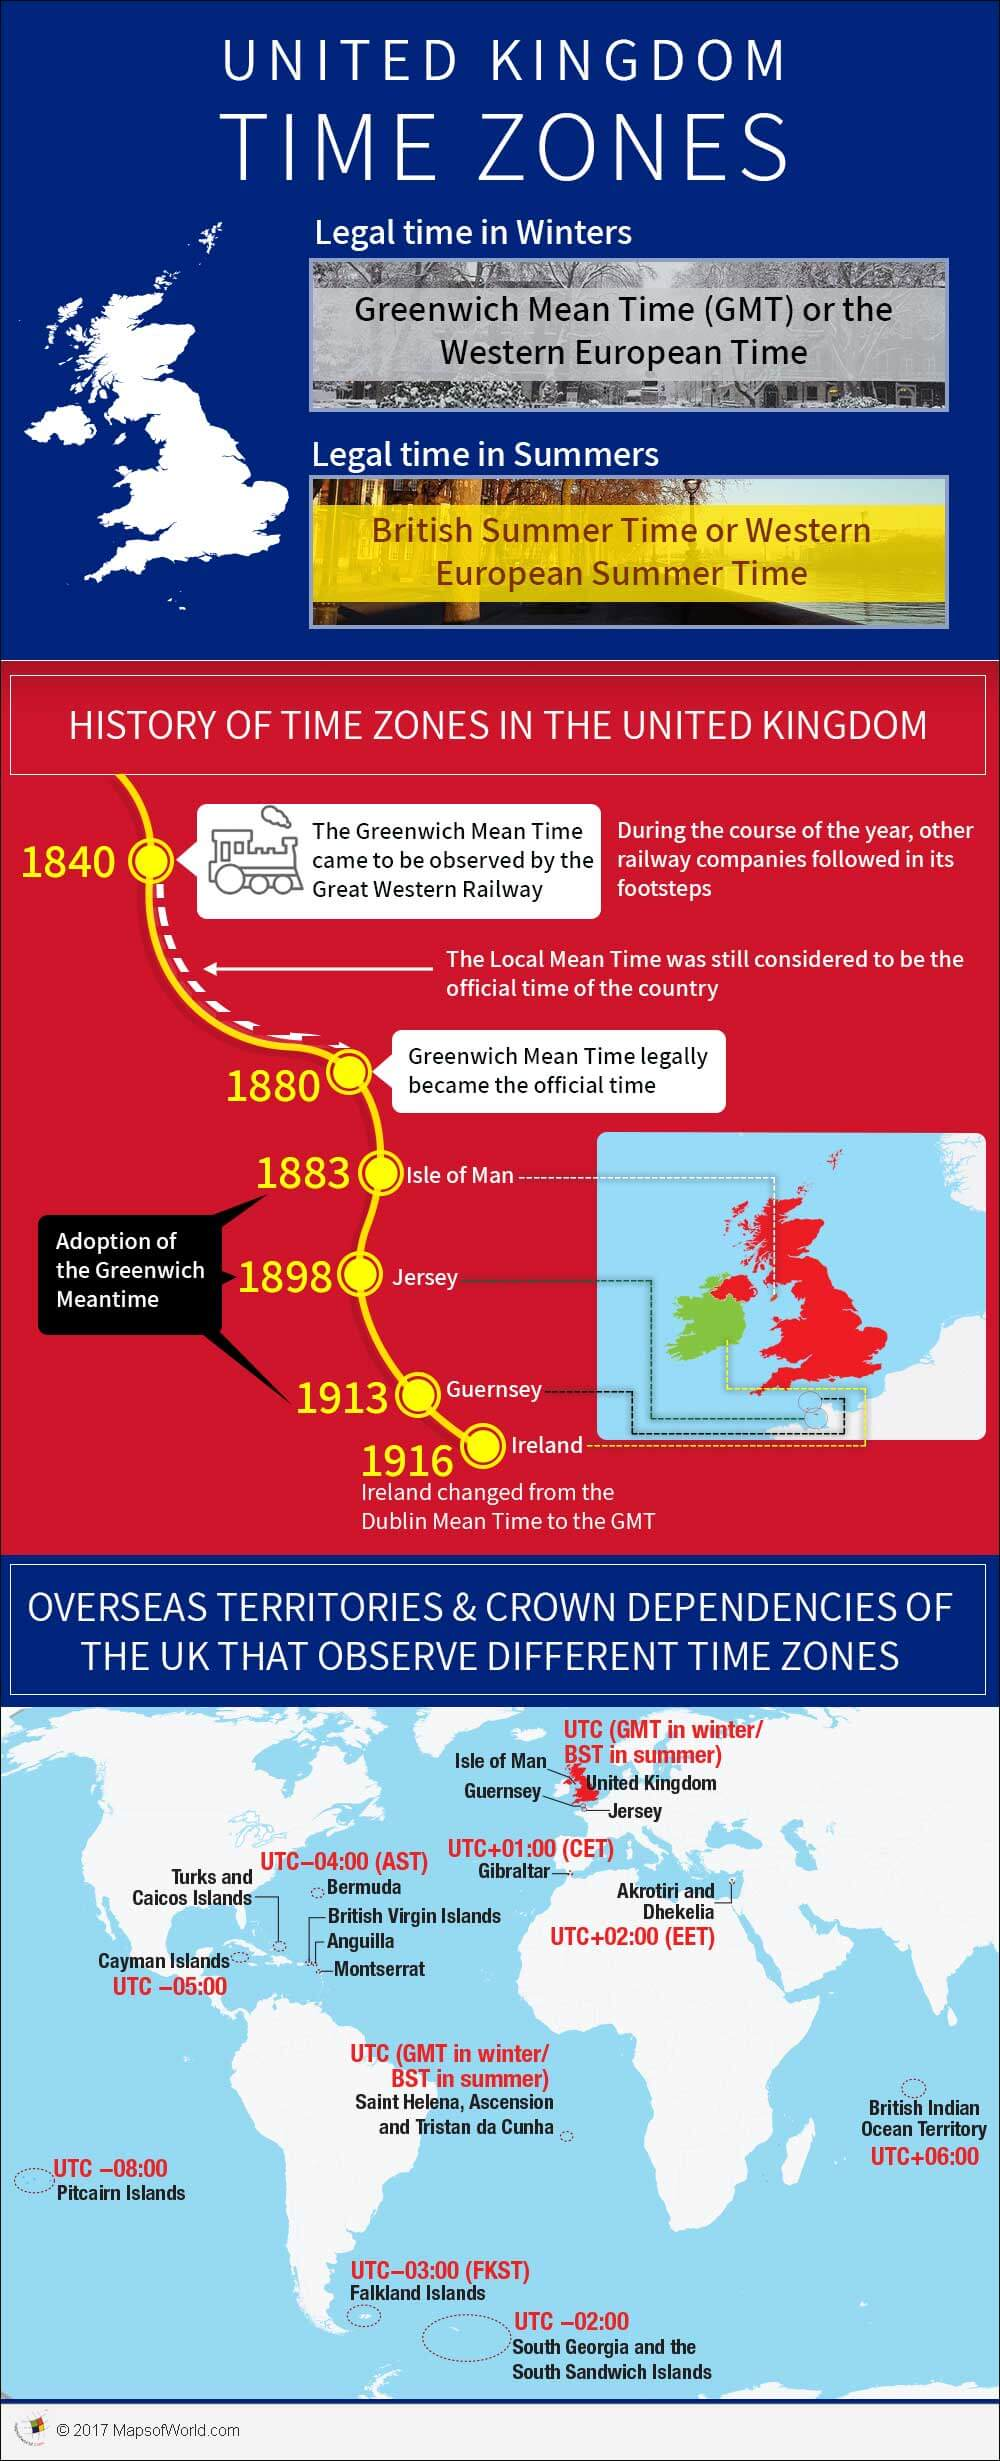 An Infographic on Time Zones of the United Kingdom